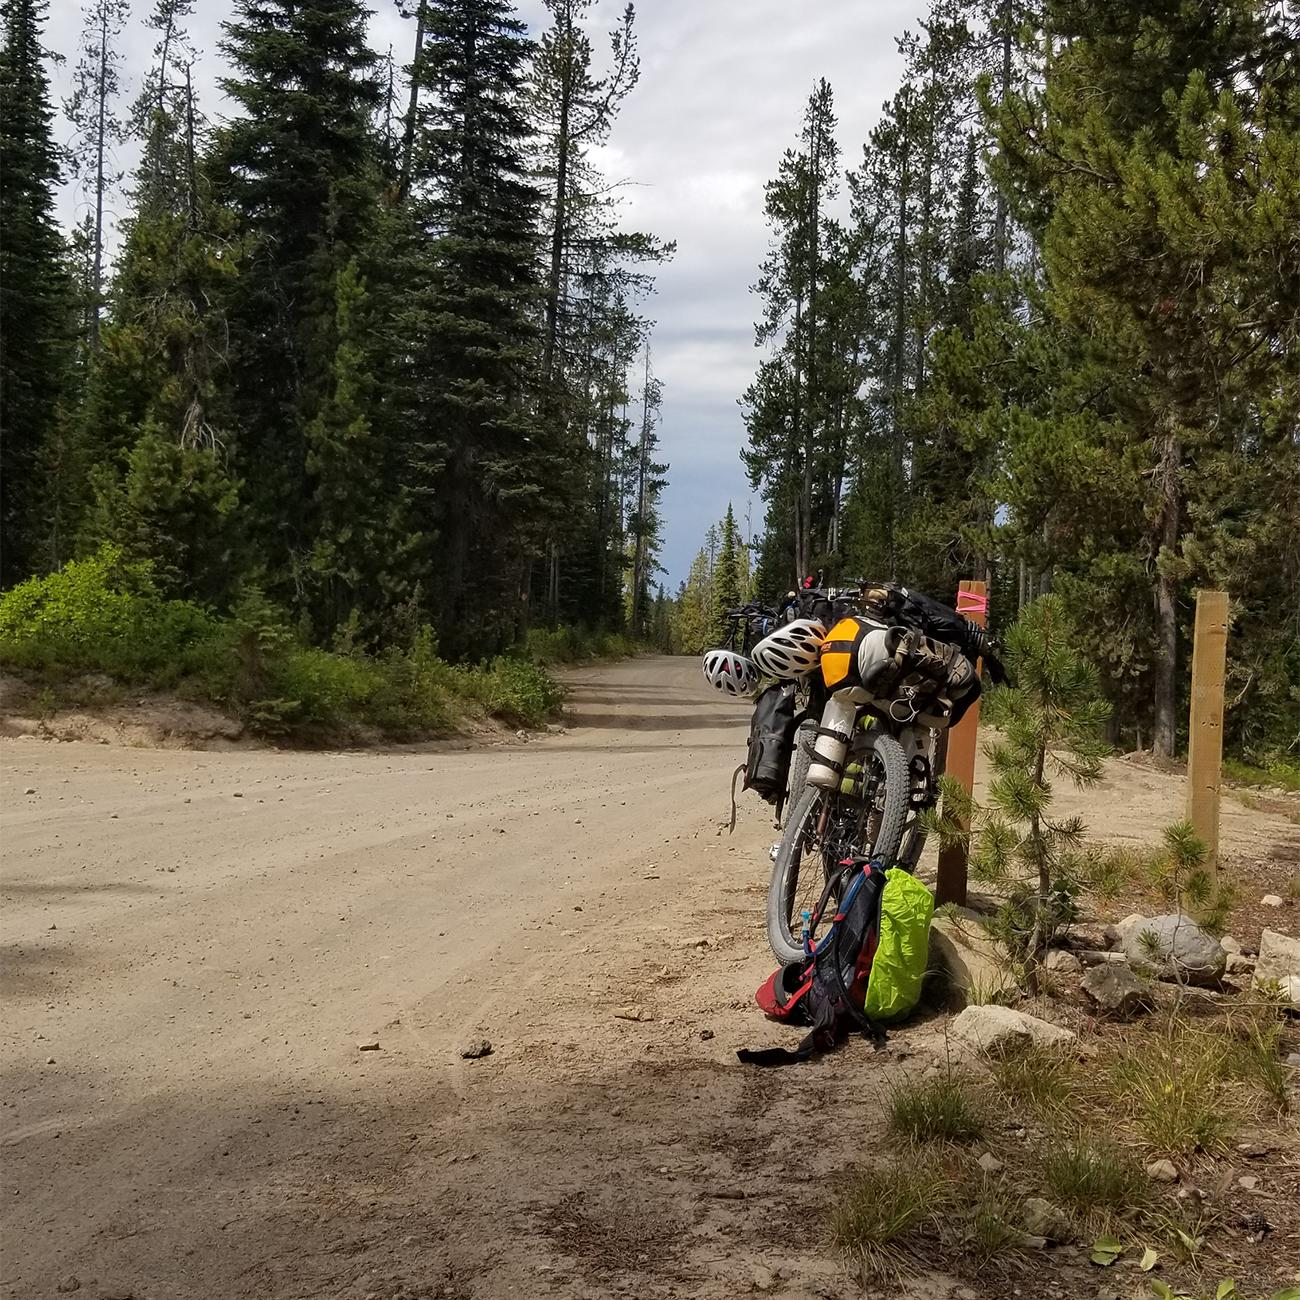 On a bike trip from Canada to Colorado, Liatti took backroads through a corner of Yellowstone National Park.